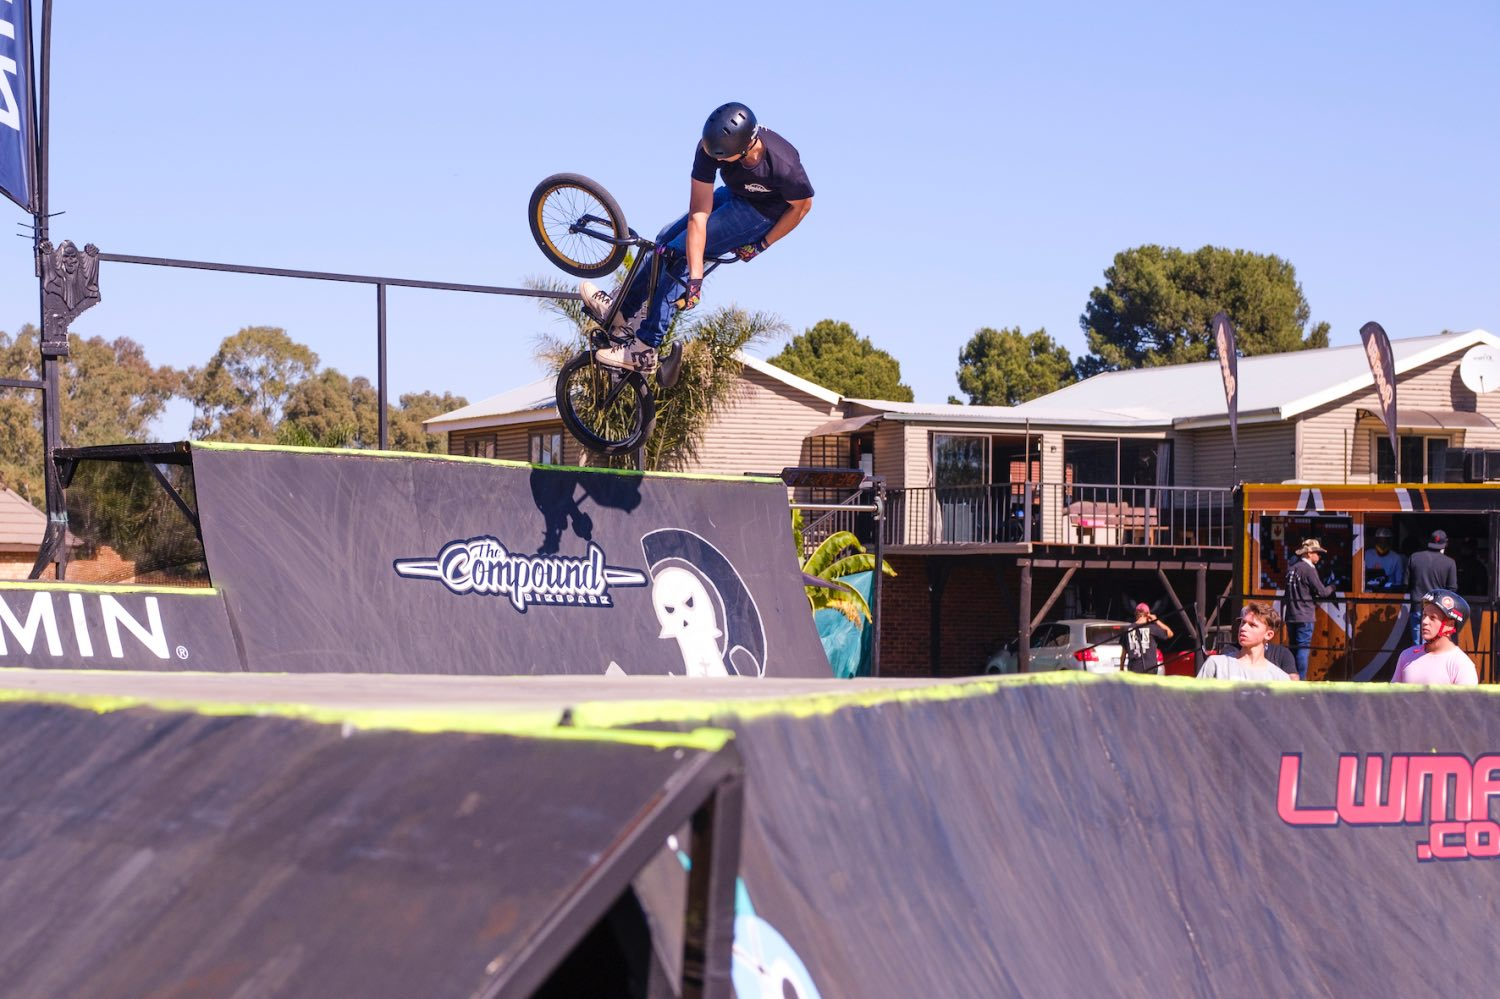 Damion Fourie competing at the Park Lines BMX Tournament